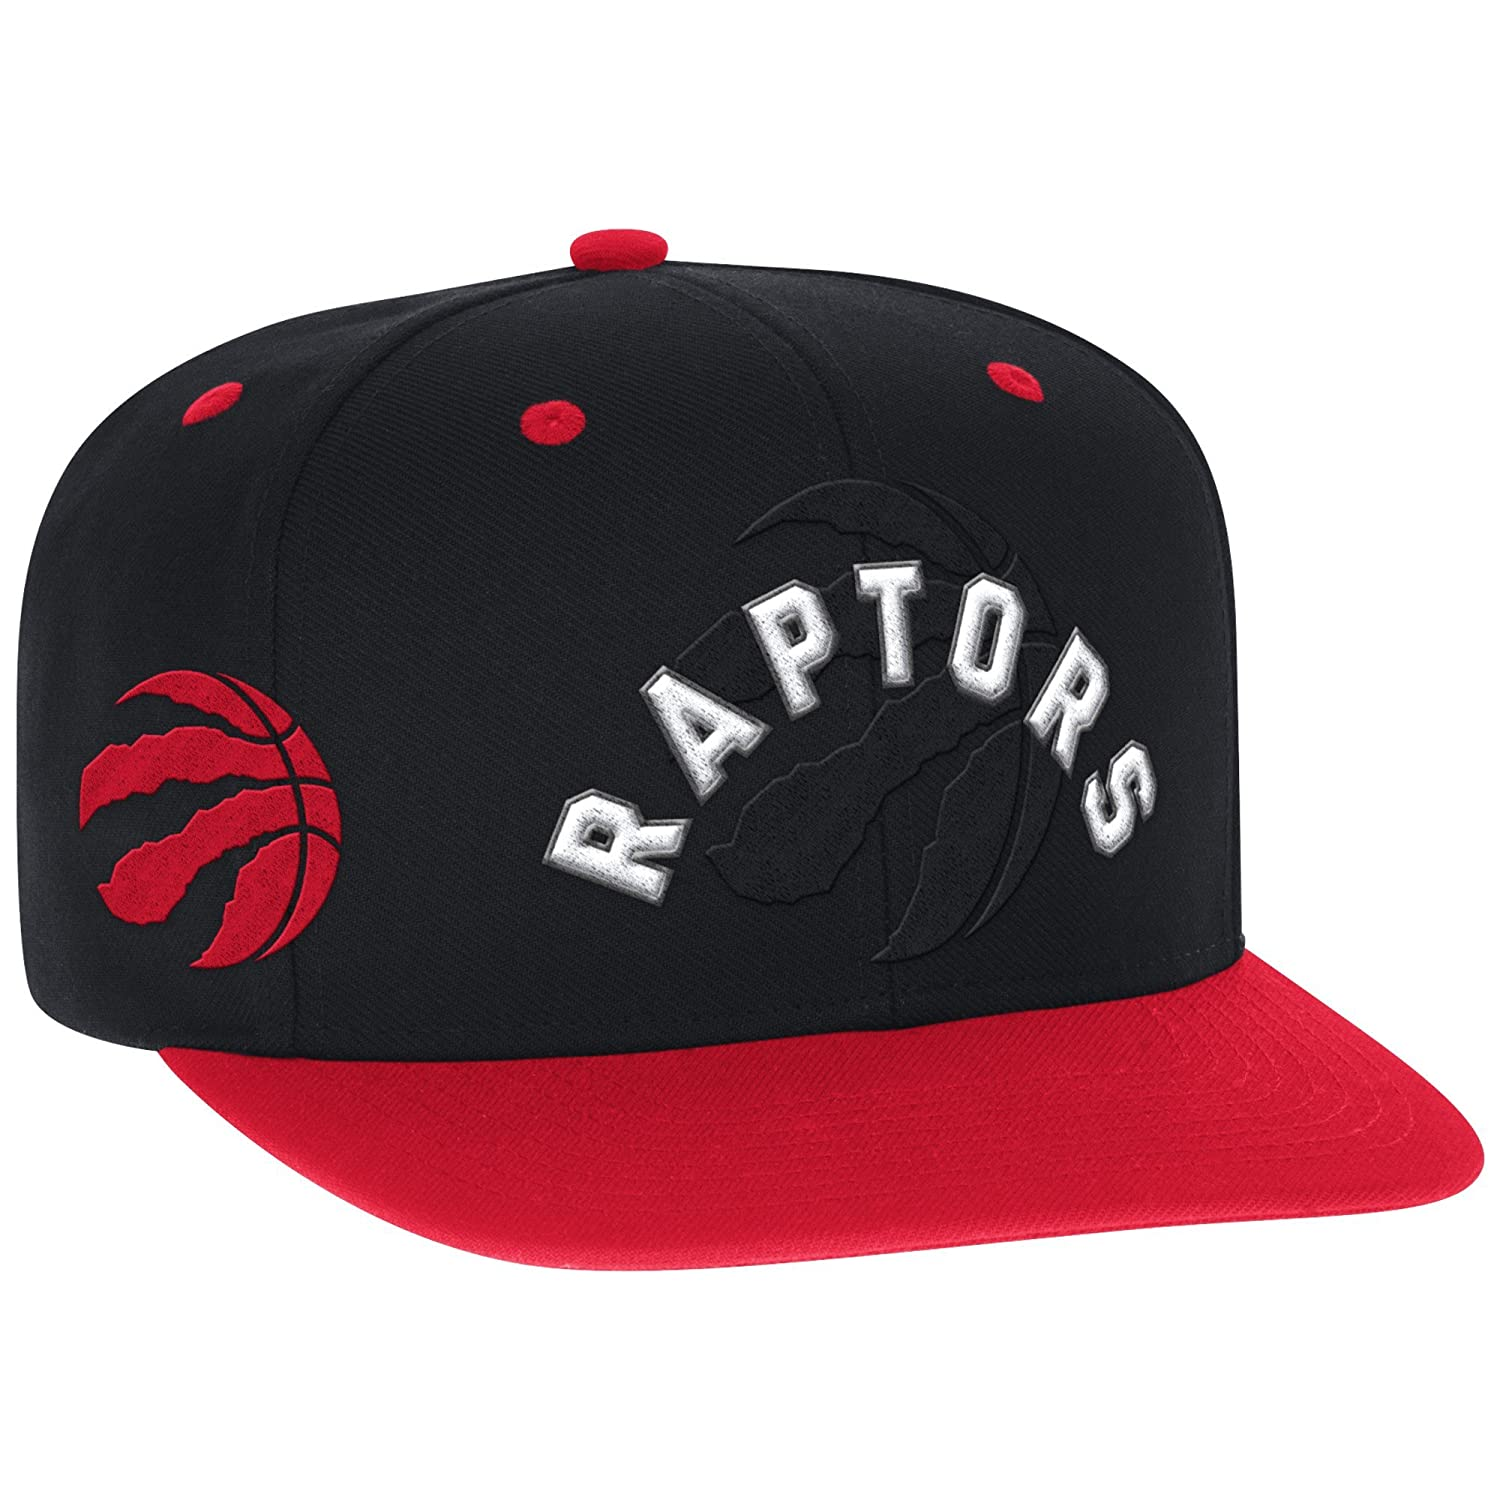 Toronto Raptors Adidas 2016 NBA Draft Day Authentic Snap Back Hat Cappello BM3957